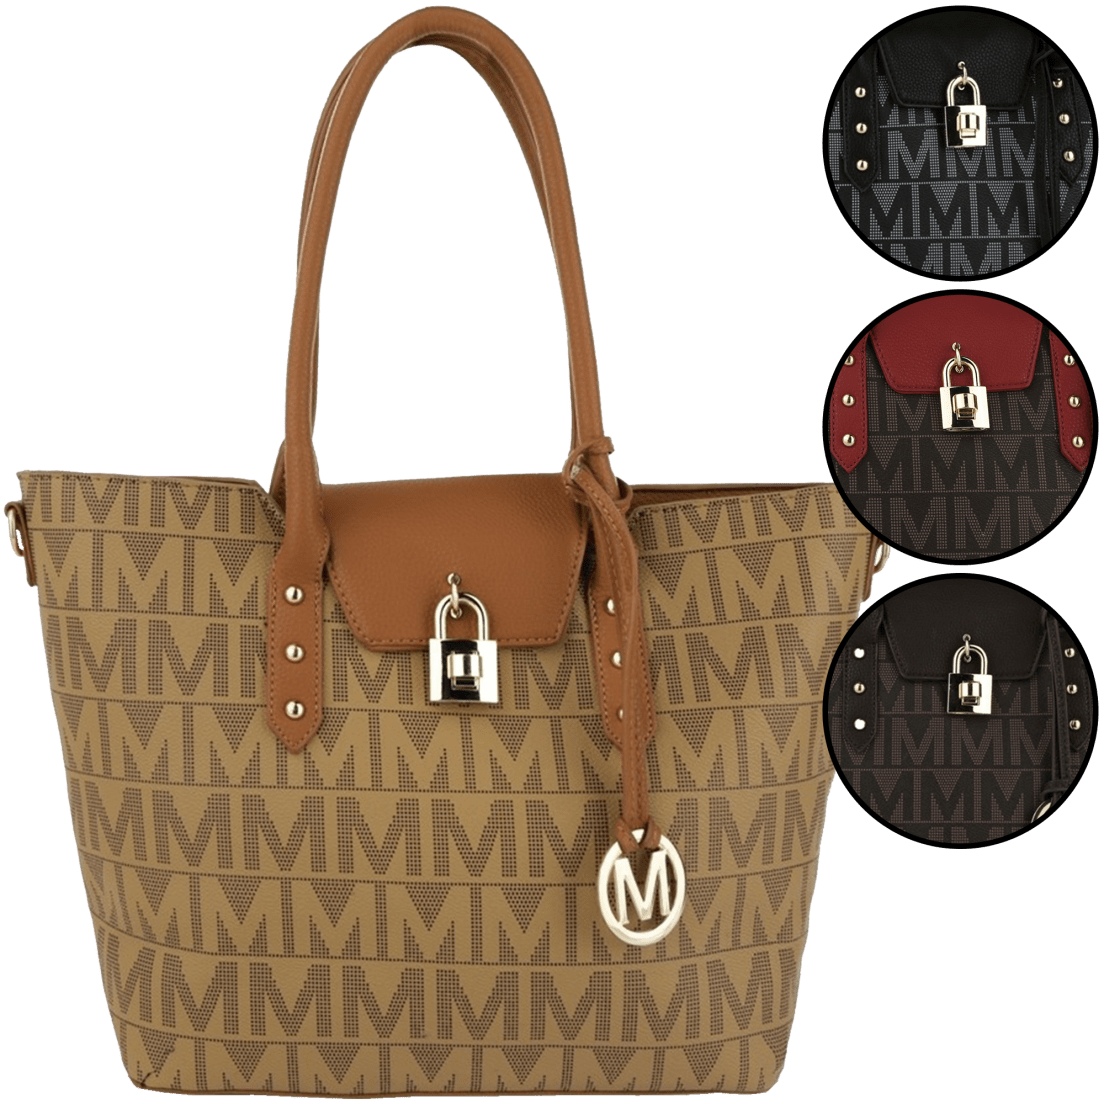 Studded Tote by Milan Imports a856e87de7648